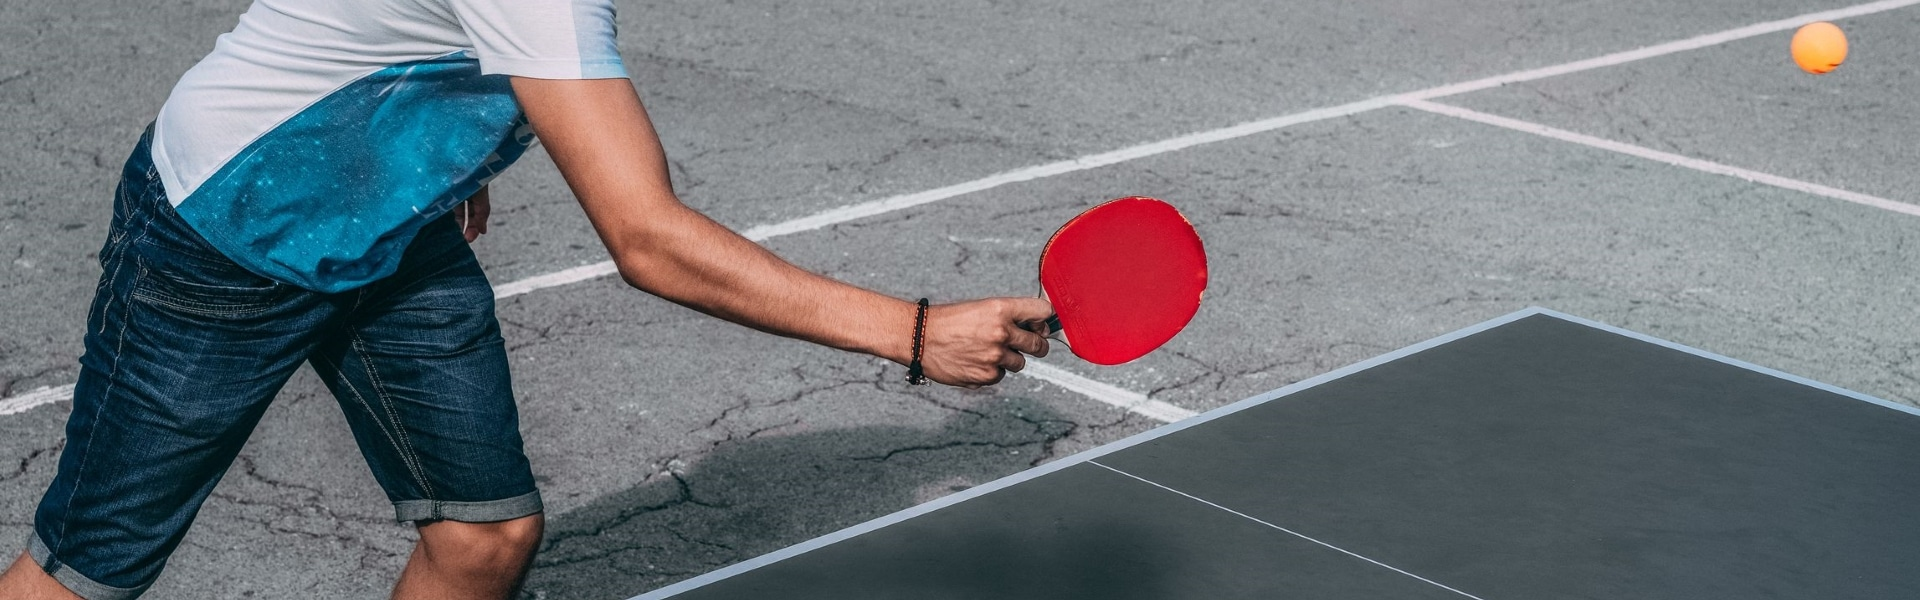 Best Ping Pong Paddles Reviewed in Detail